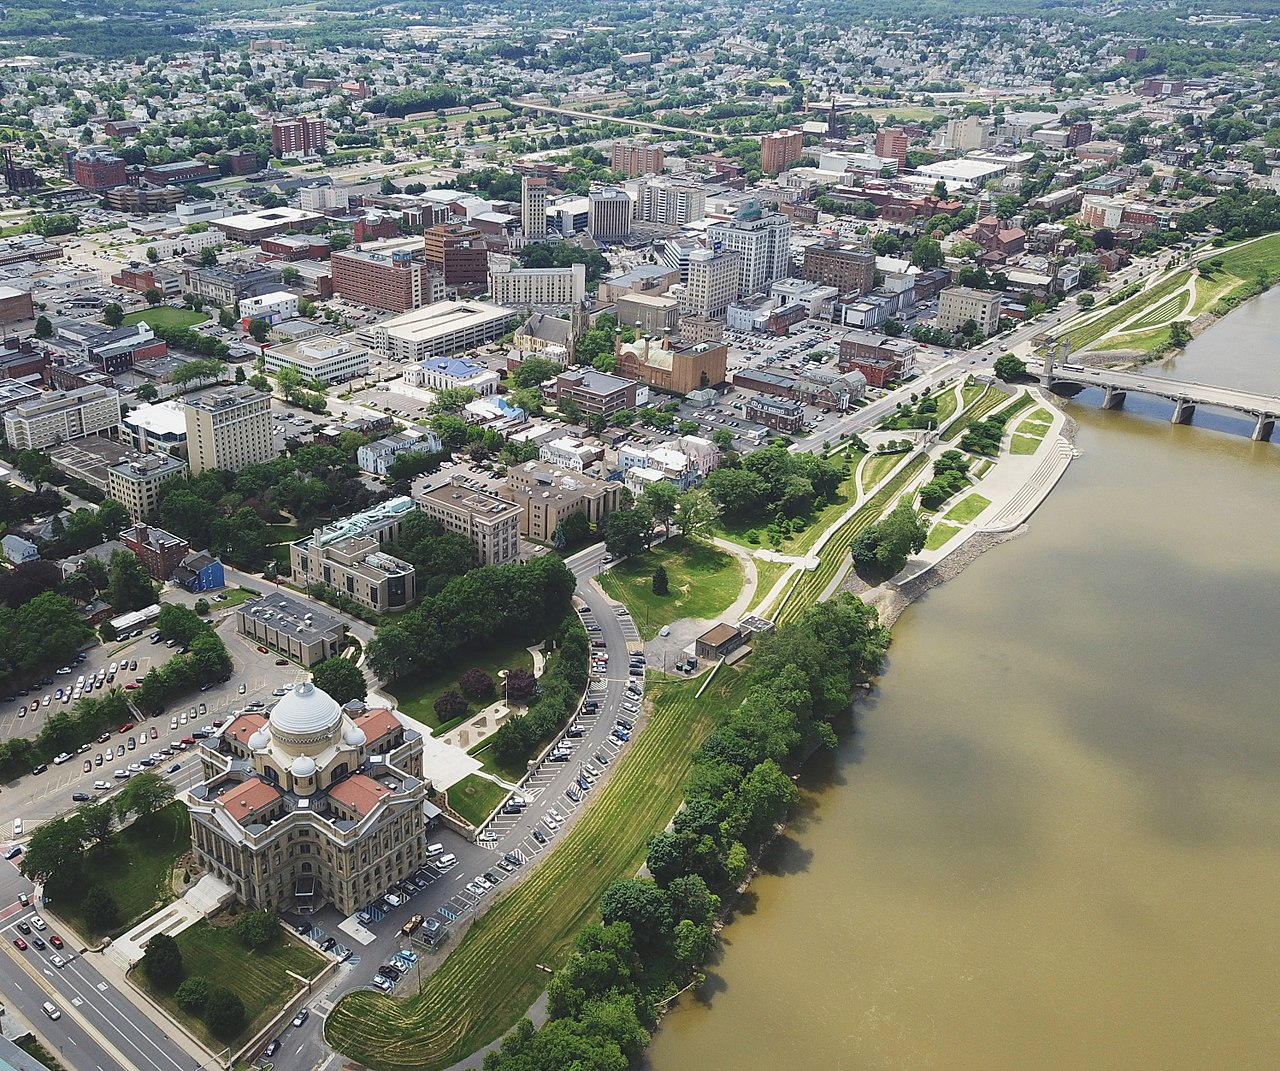 Aerial view of the courthouse and the city.